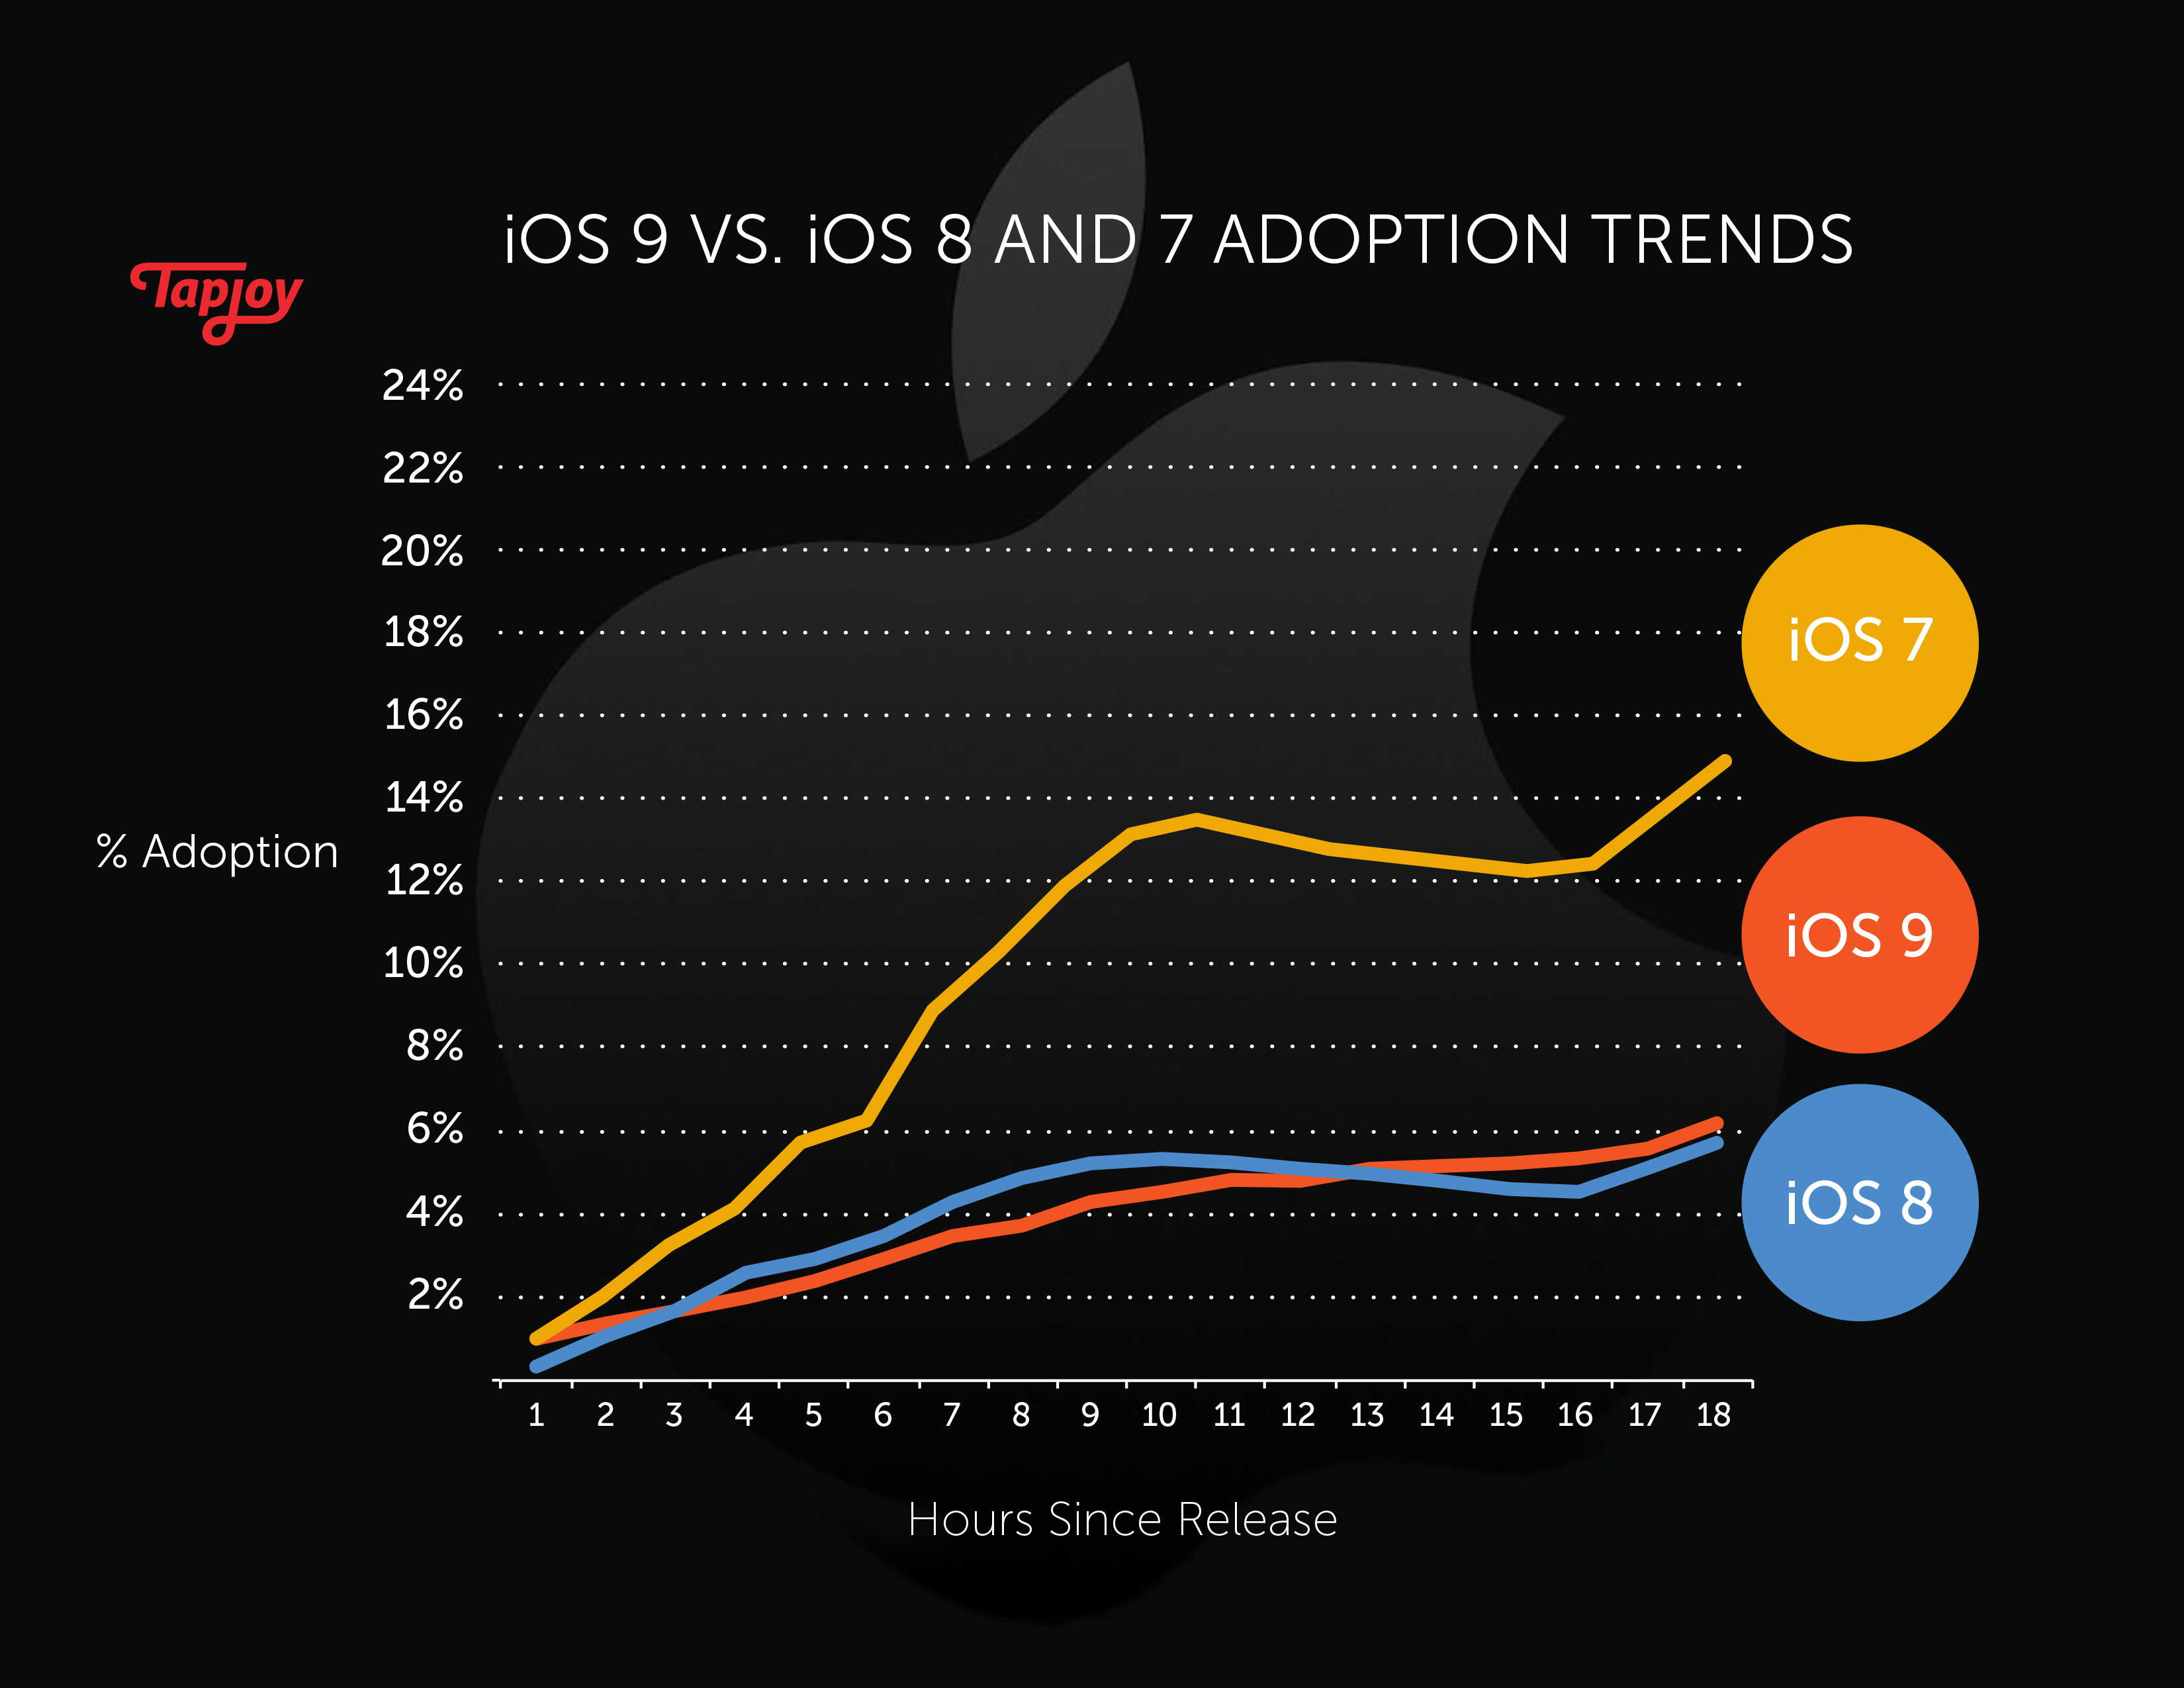 iOS 9 Uptake On a Par With 8, Much Slower Than 7